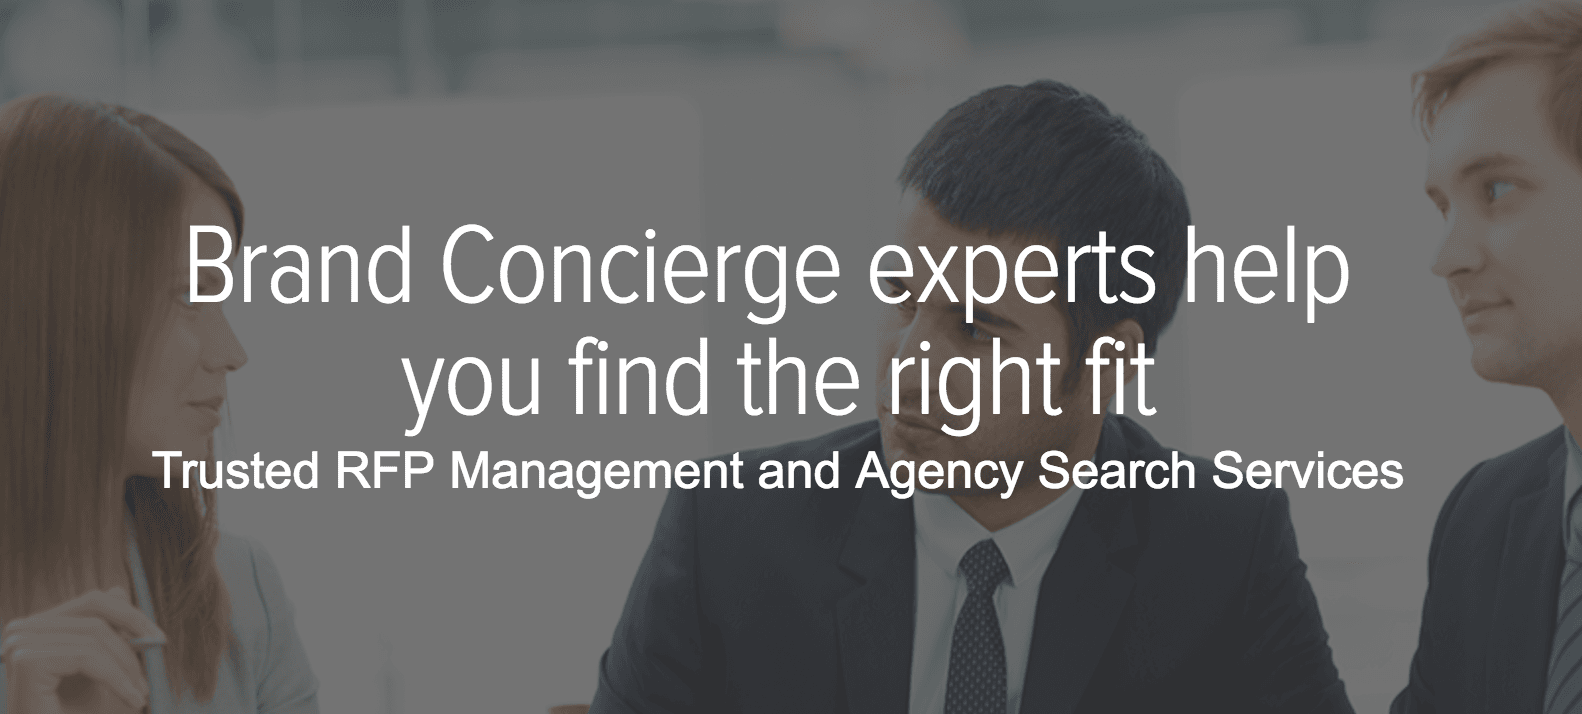 Brand Concierge experts help you find the right fit